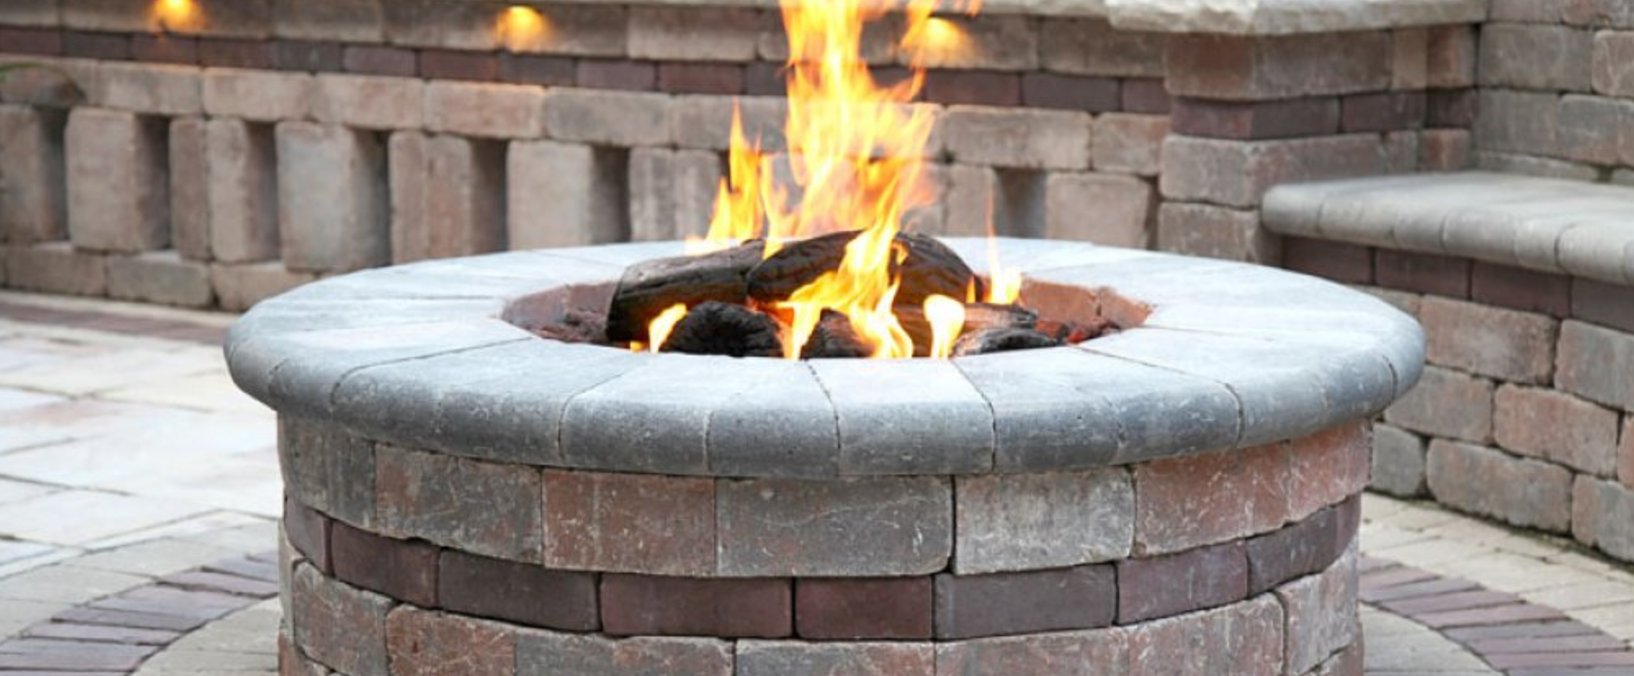 before you choose natural stone for your outdoor fireplace